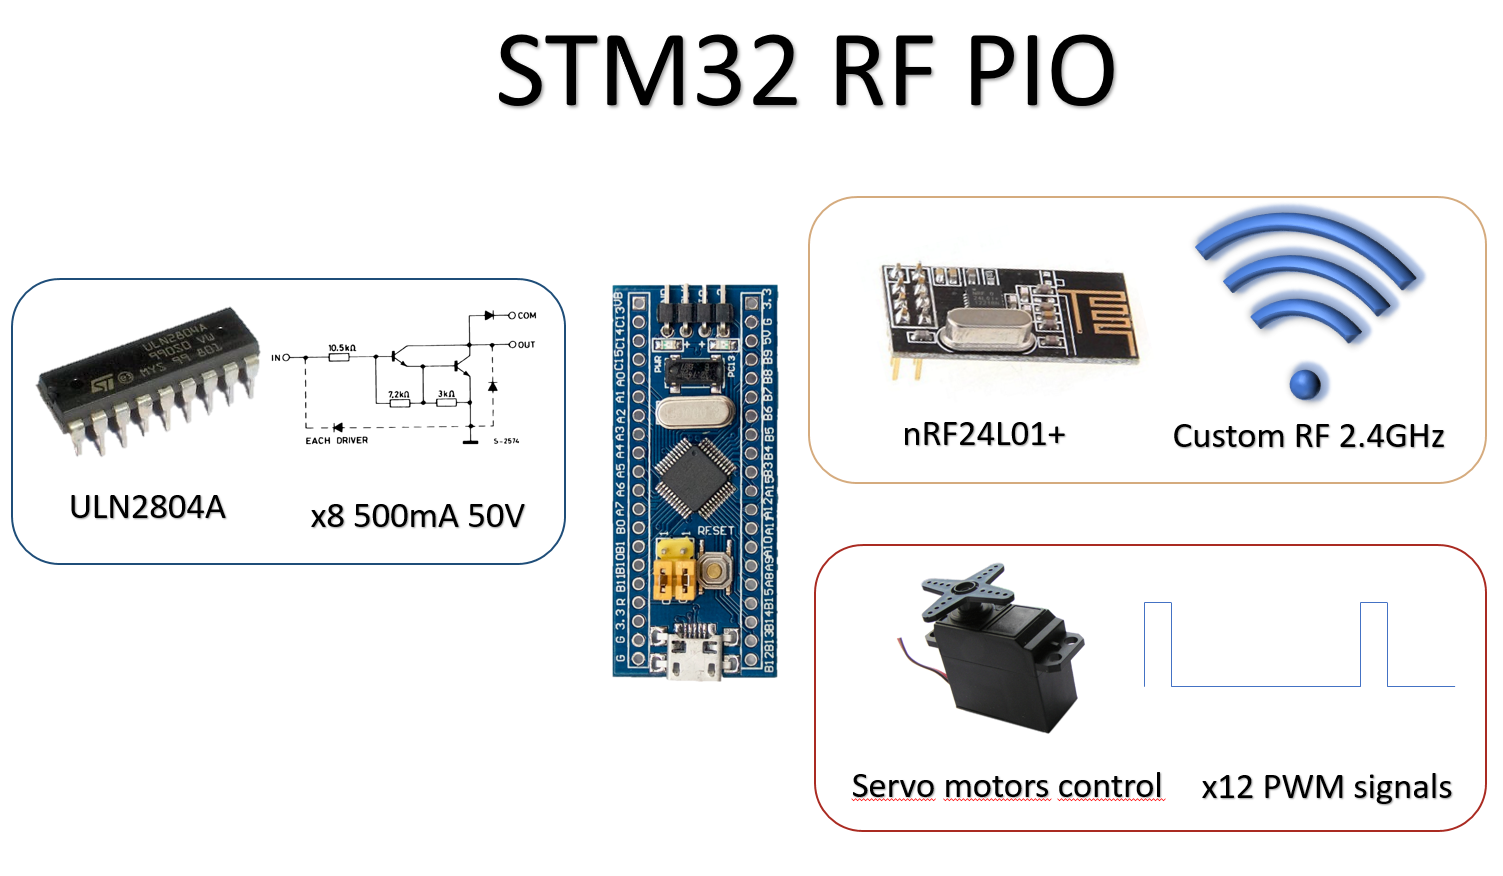 Stm32 Blue Pill Iot Expansion Boards X8 Wiring Diagram Rf Pio Concept